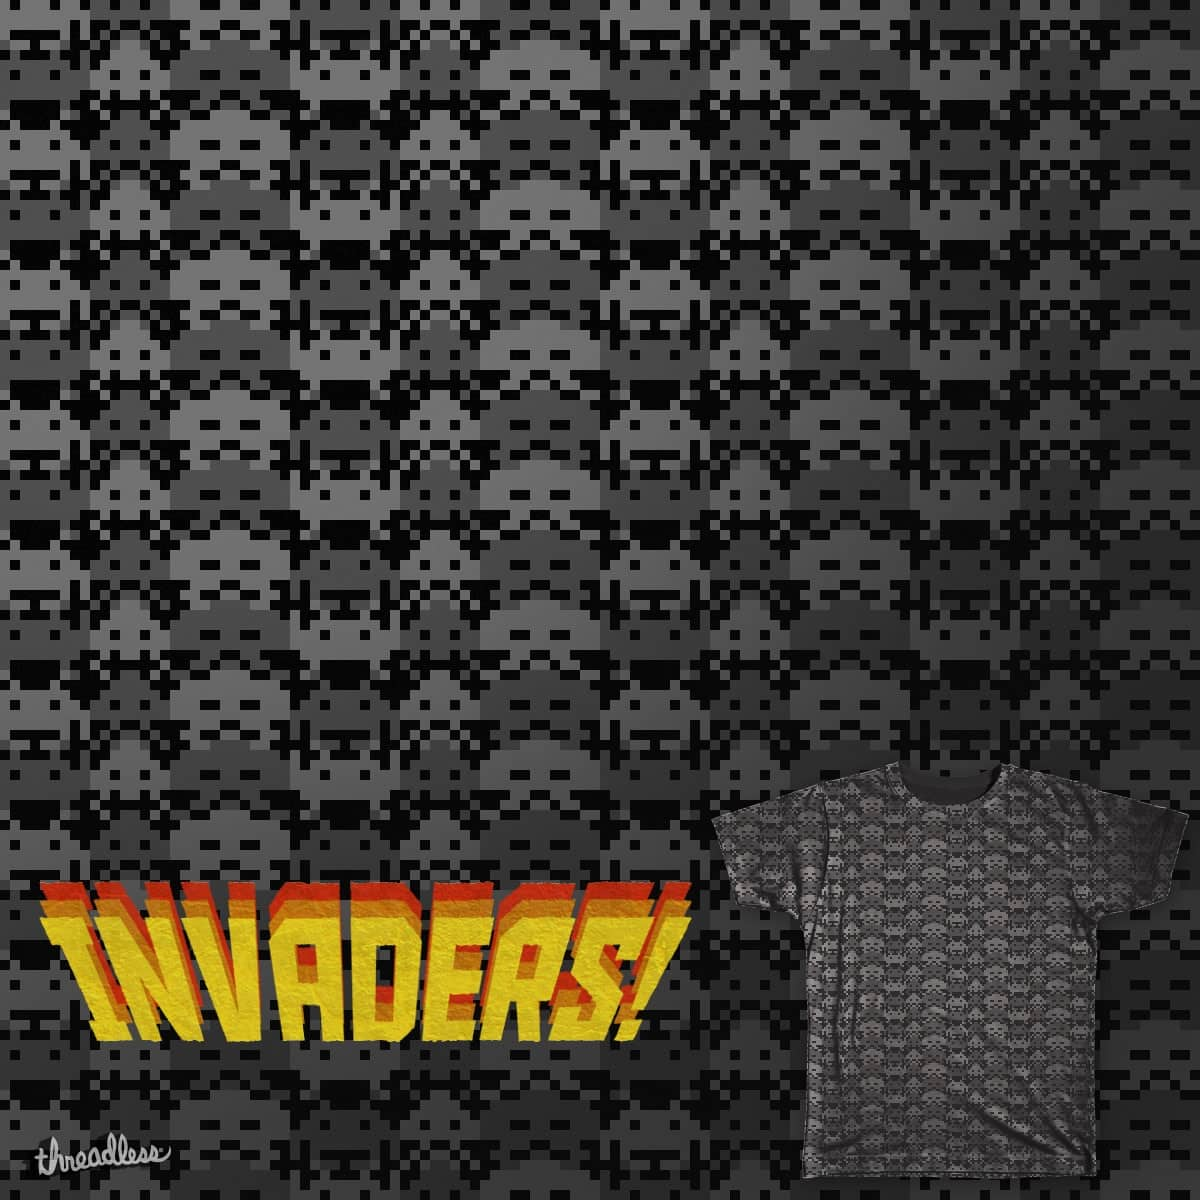 Invaders by bernaloyola on Threadless